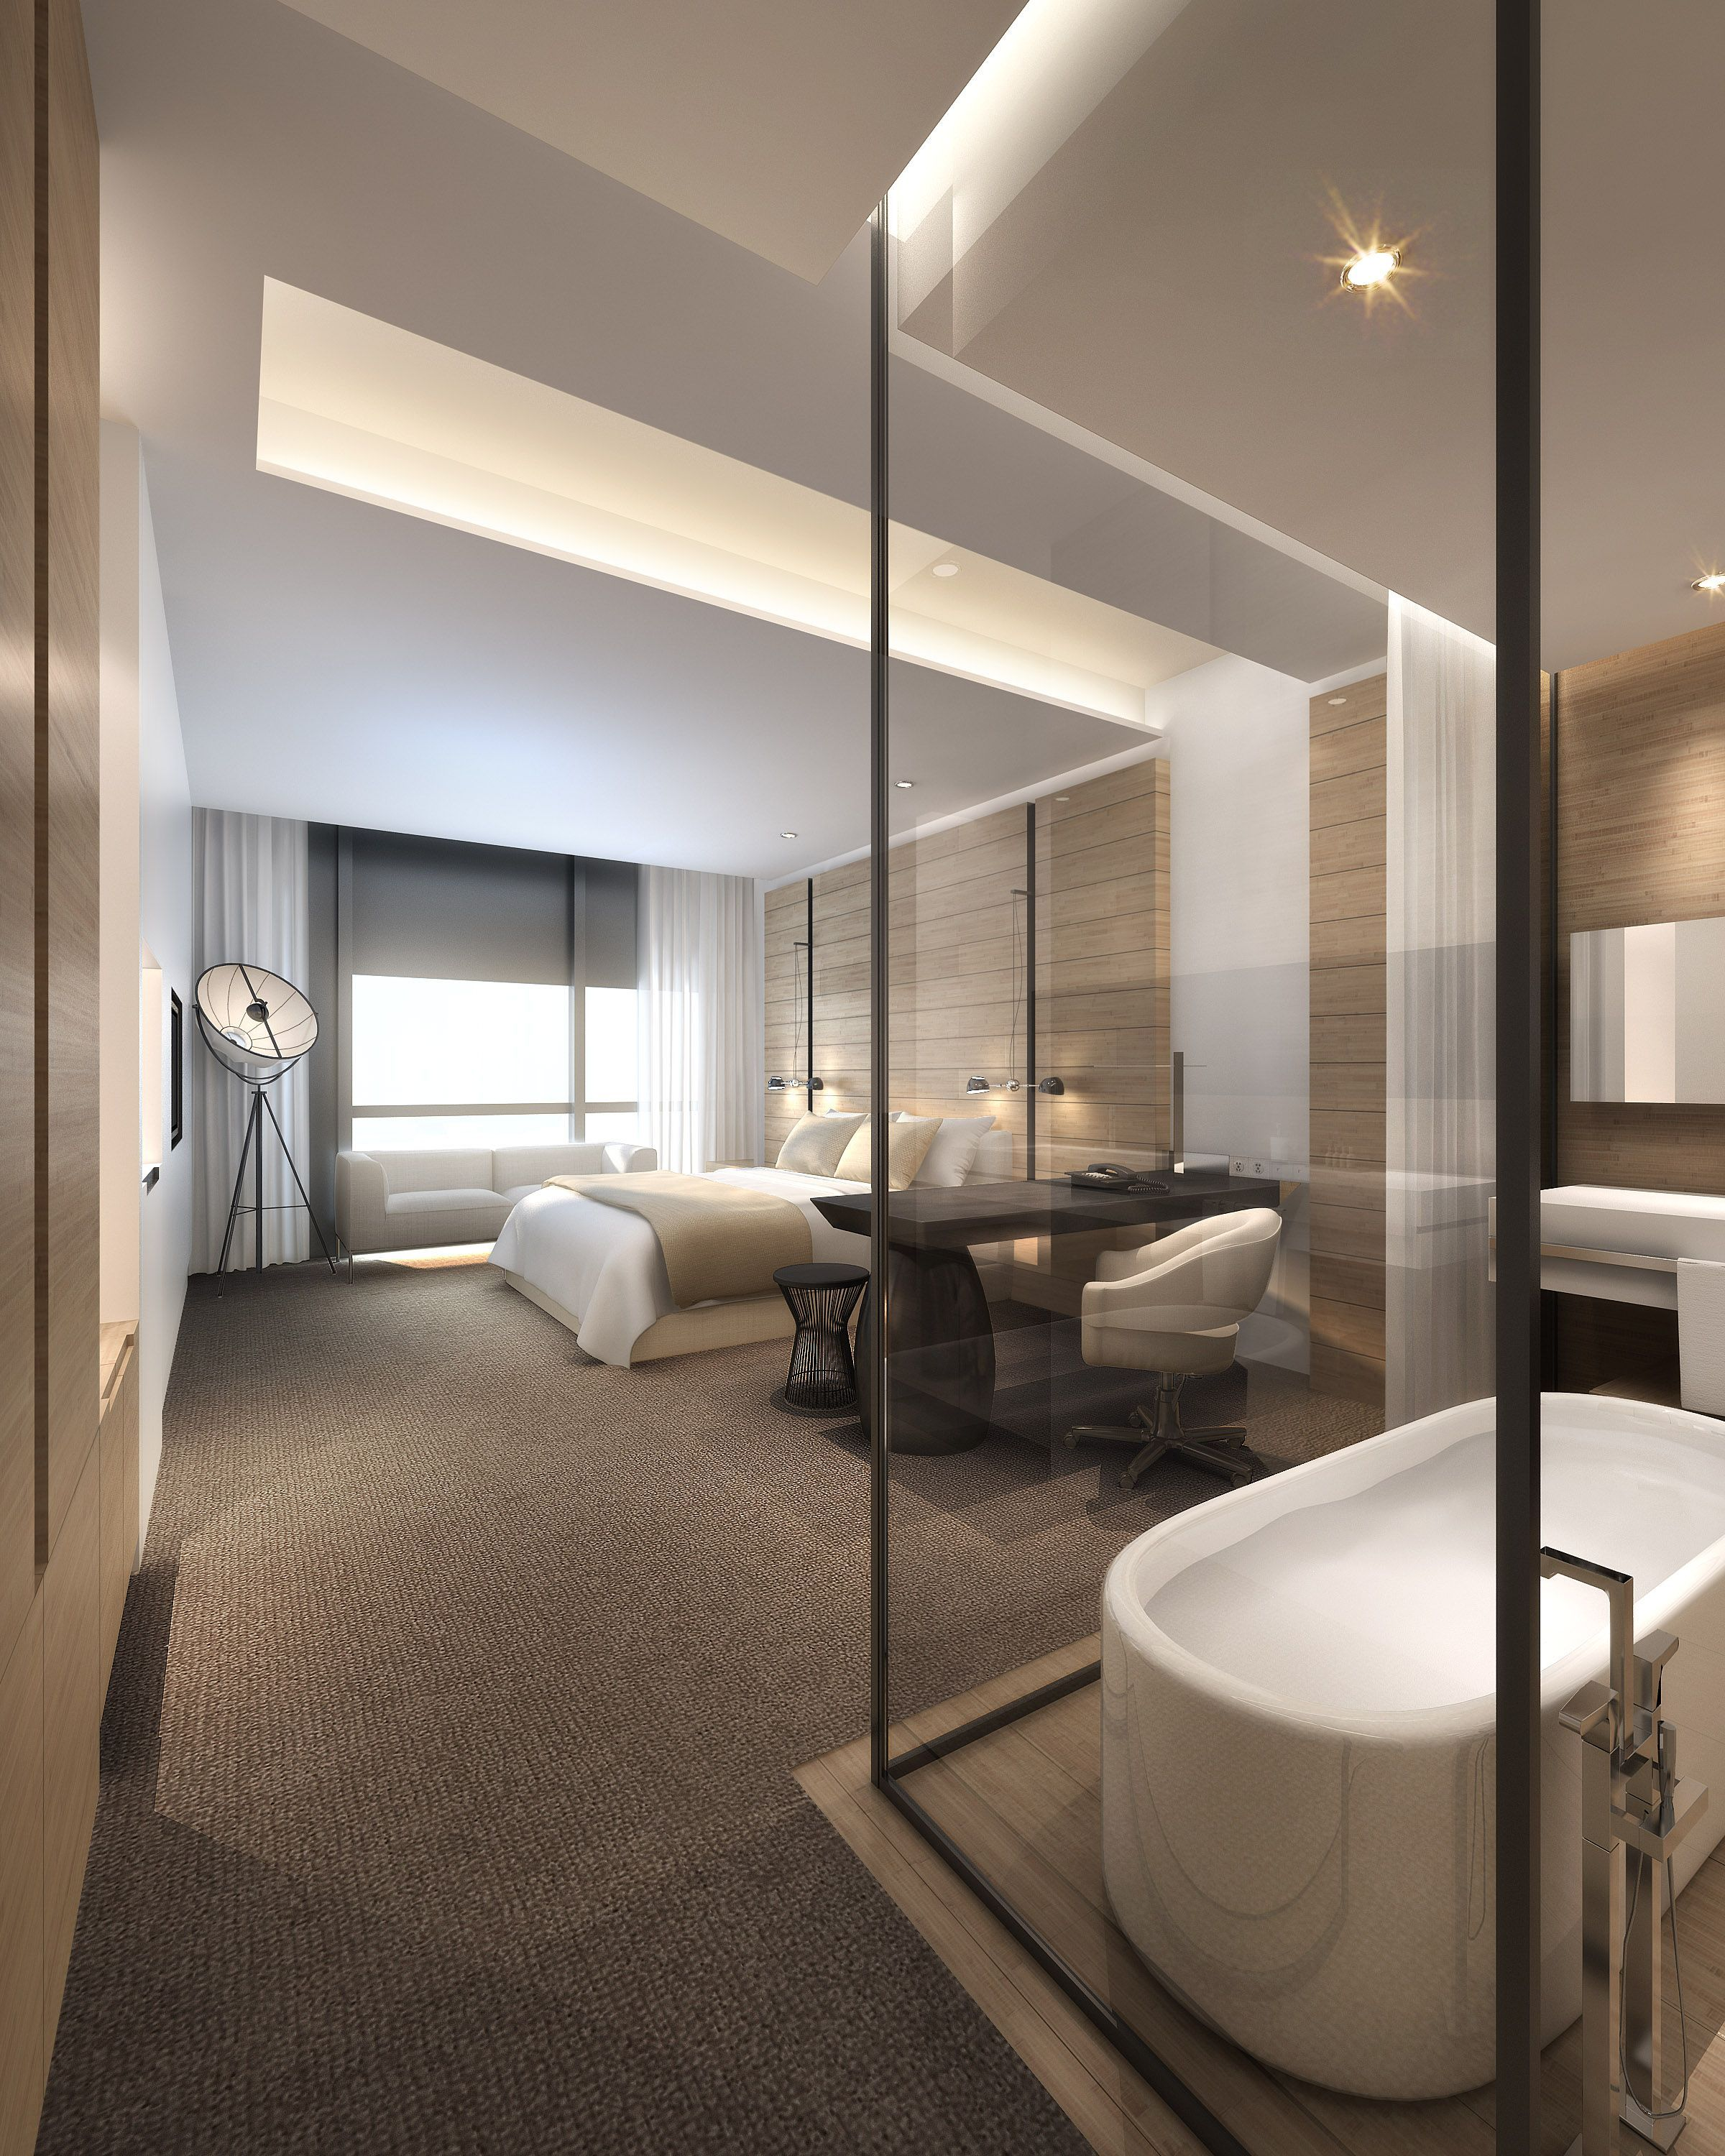 Hotel Room Designs: Open Concept Bathrooms In The Bedroom, A New Trend